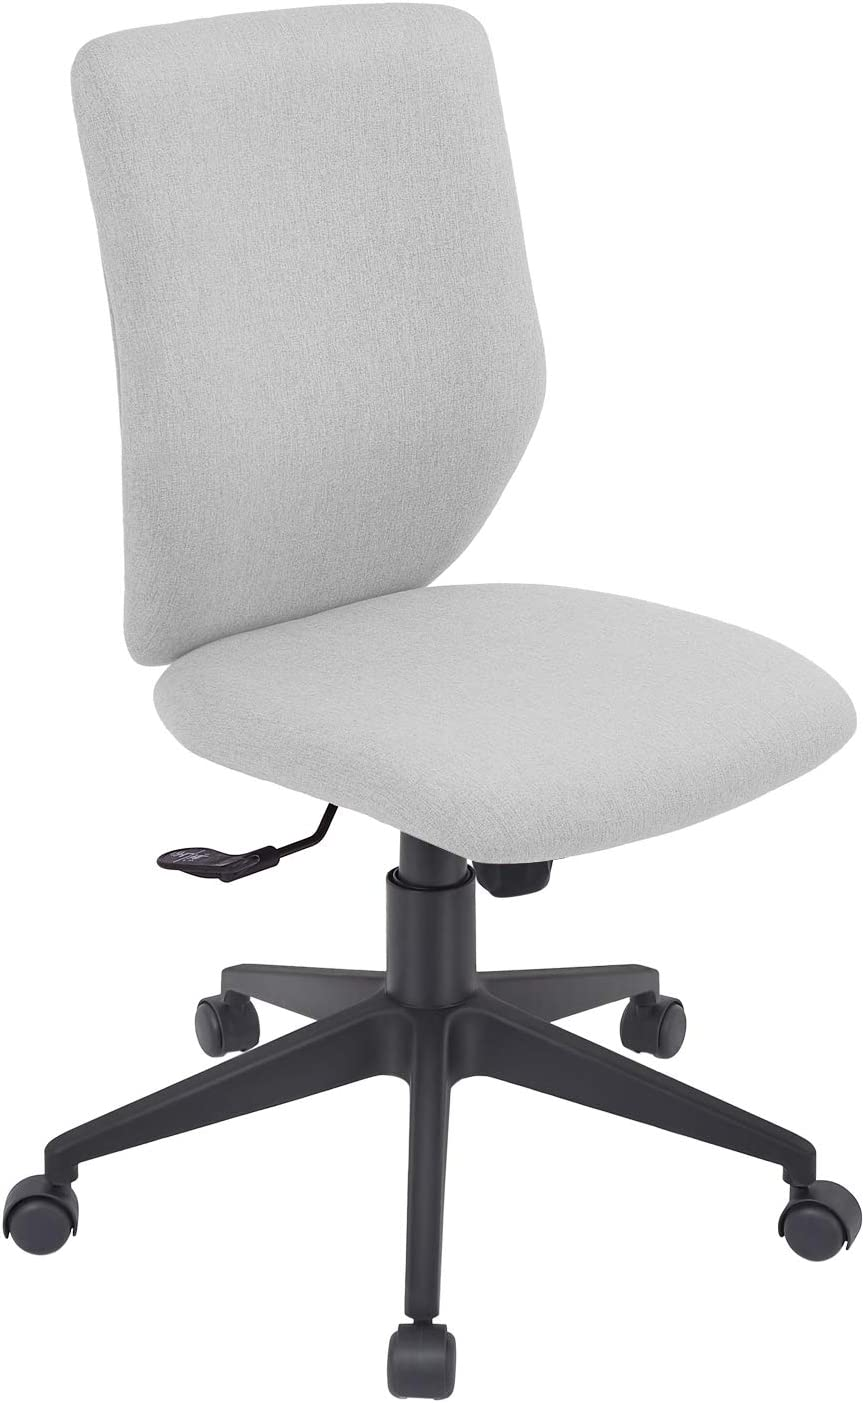 Bowthy Armless Office Chair Ergonomic Computer Task Desk Chair Without Arms Mid Back Fabric Swivel Chair (Light Grey)